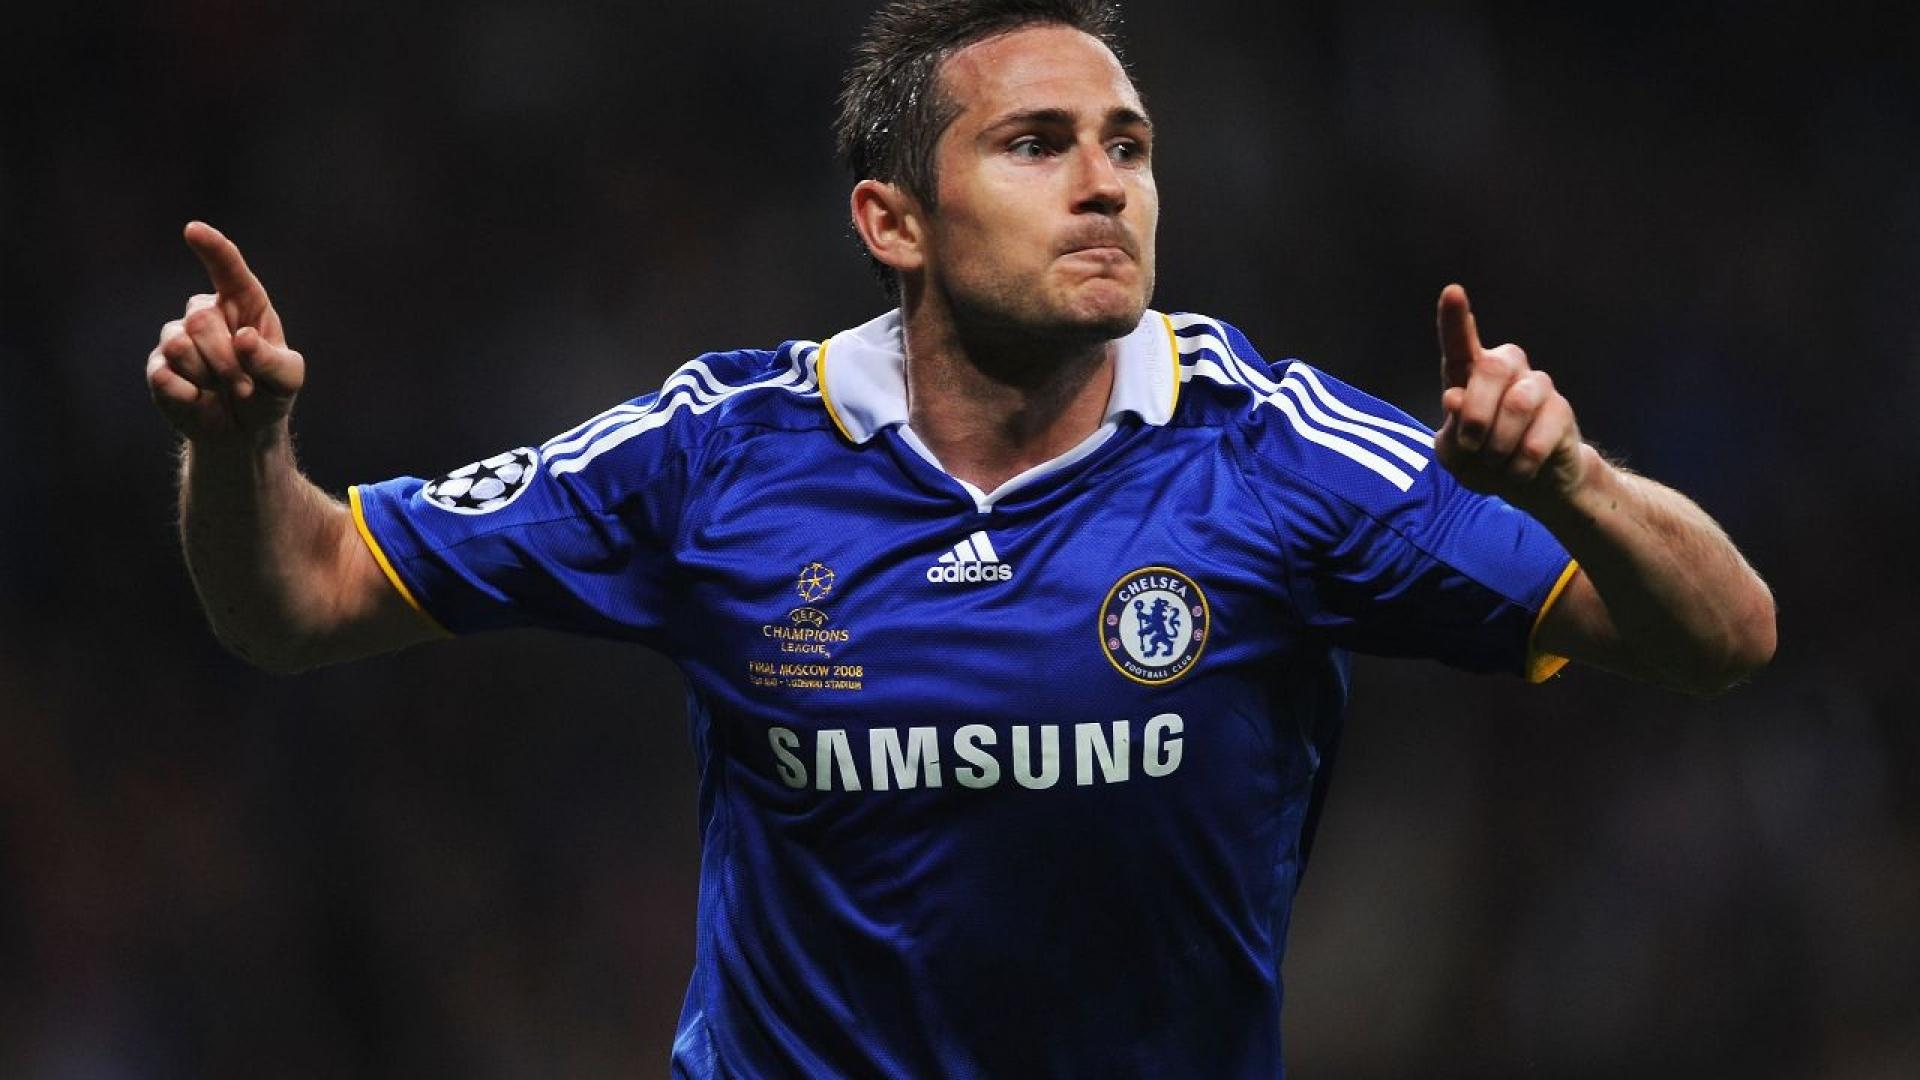 Frank Lampard Hd | Wide Screen Wallpaper 1080p,2K,4K